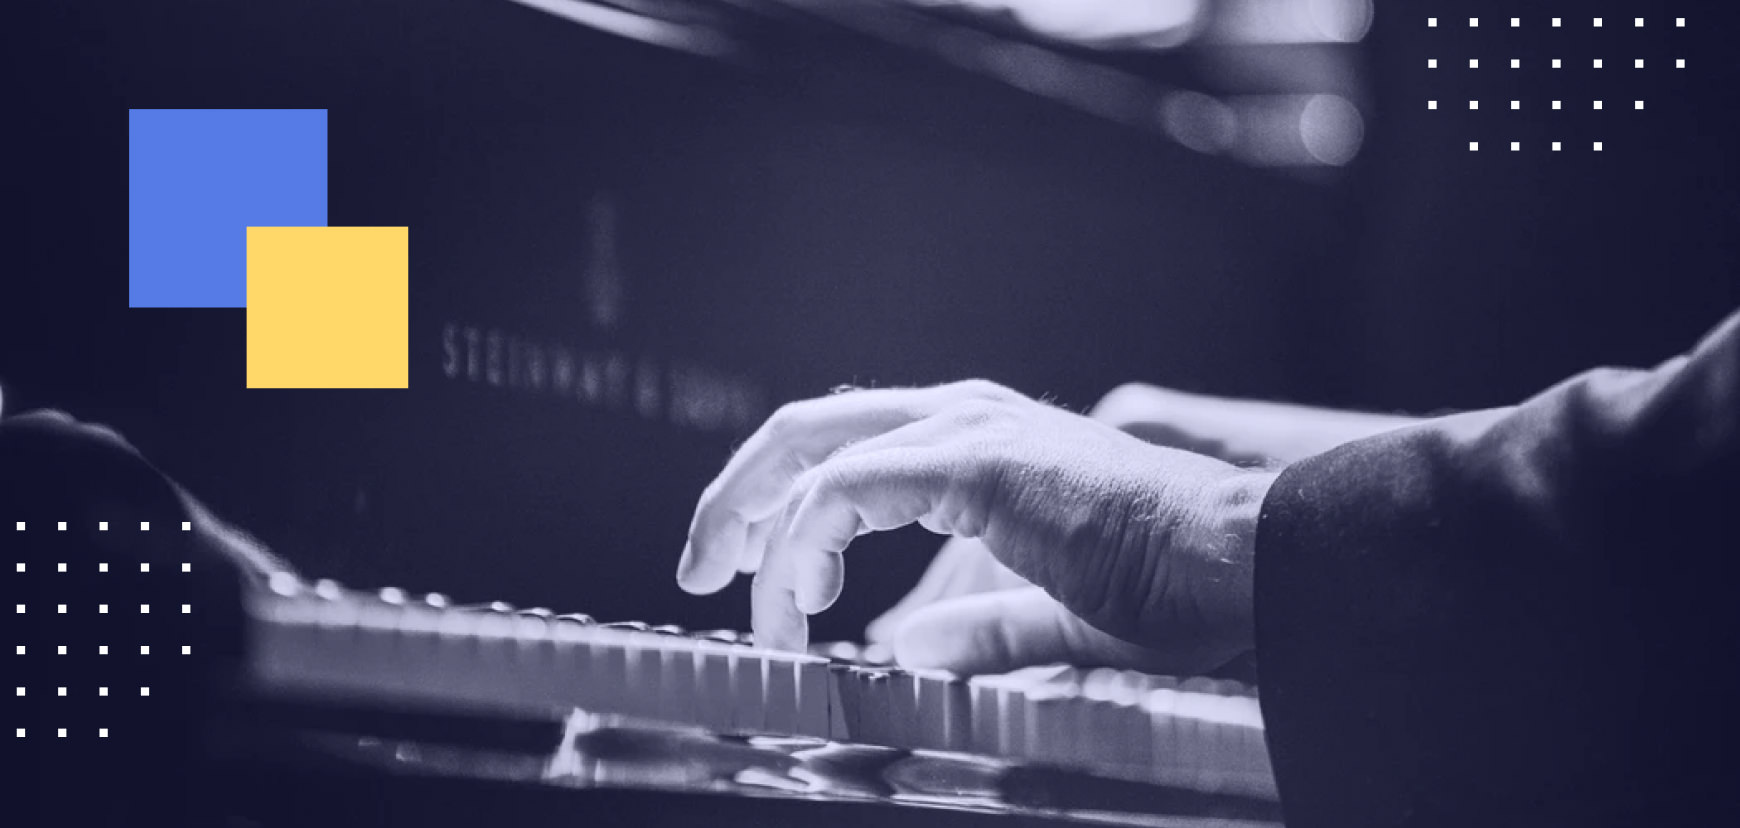 25 Cinematic Royalty Free Piano Music for Film and Videos